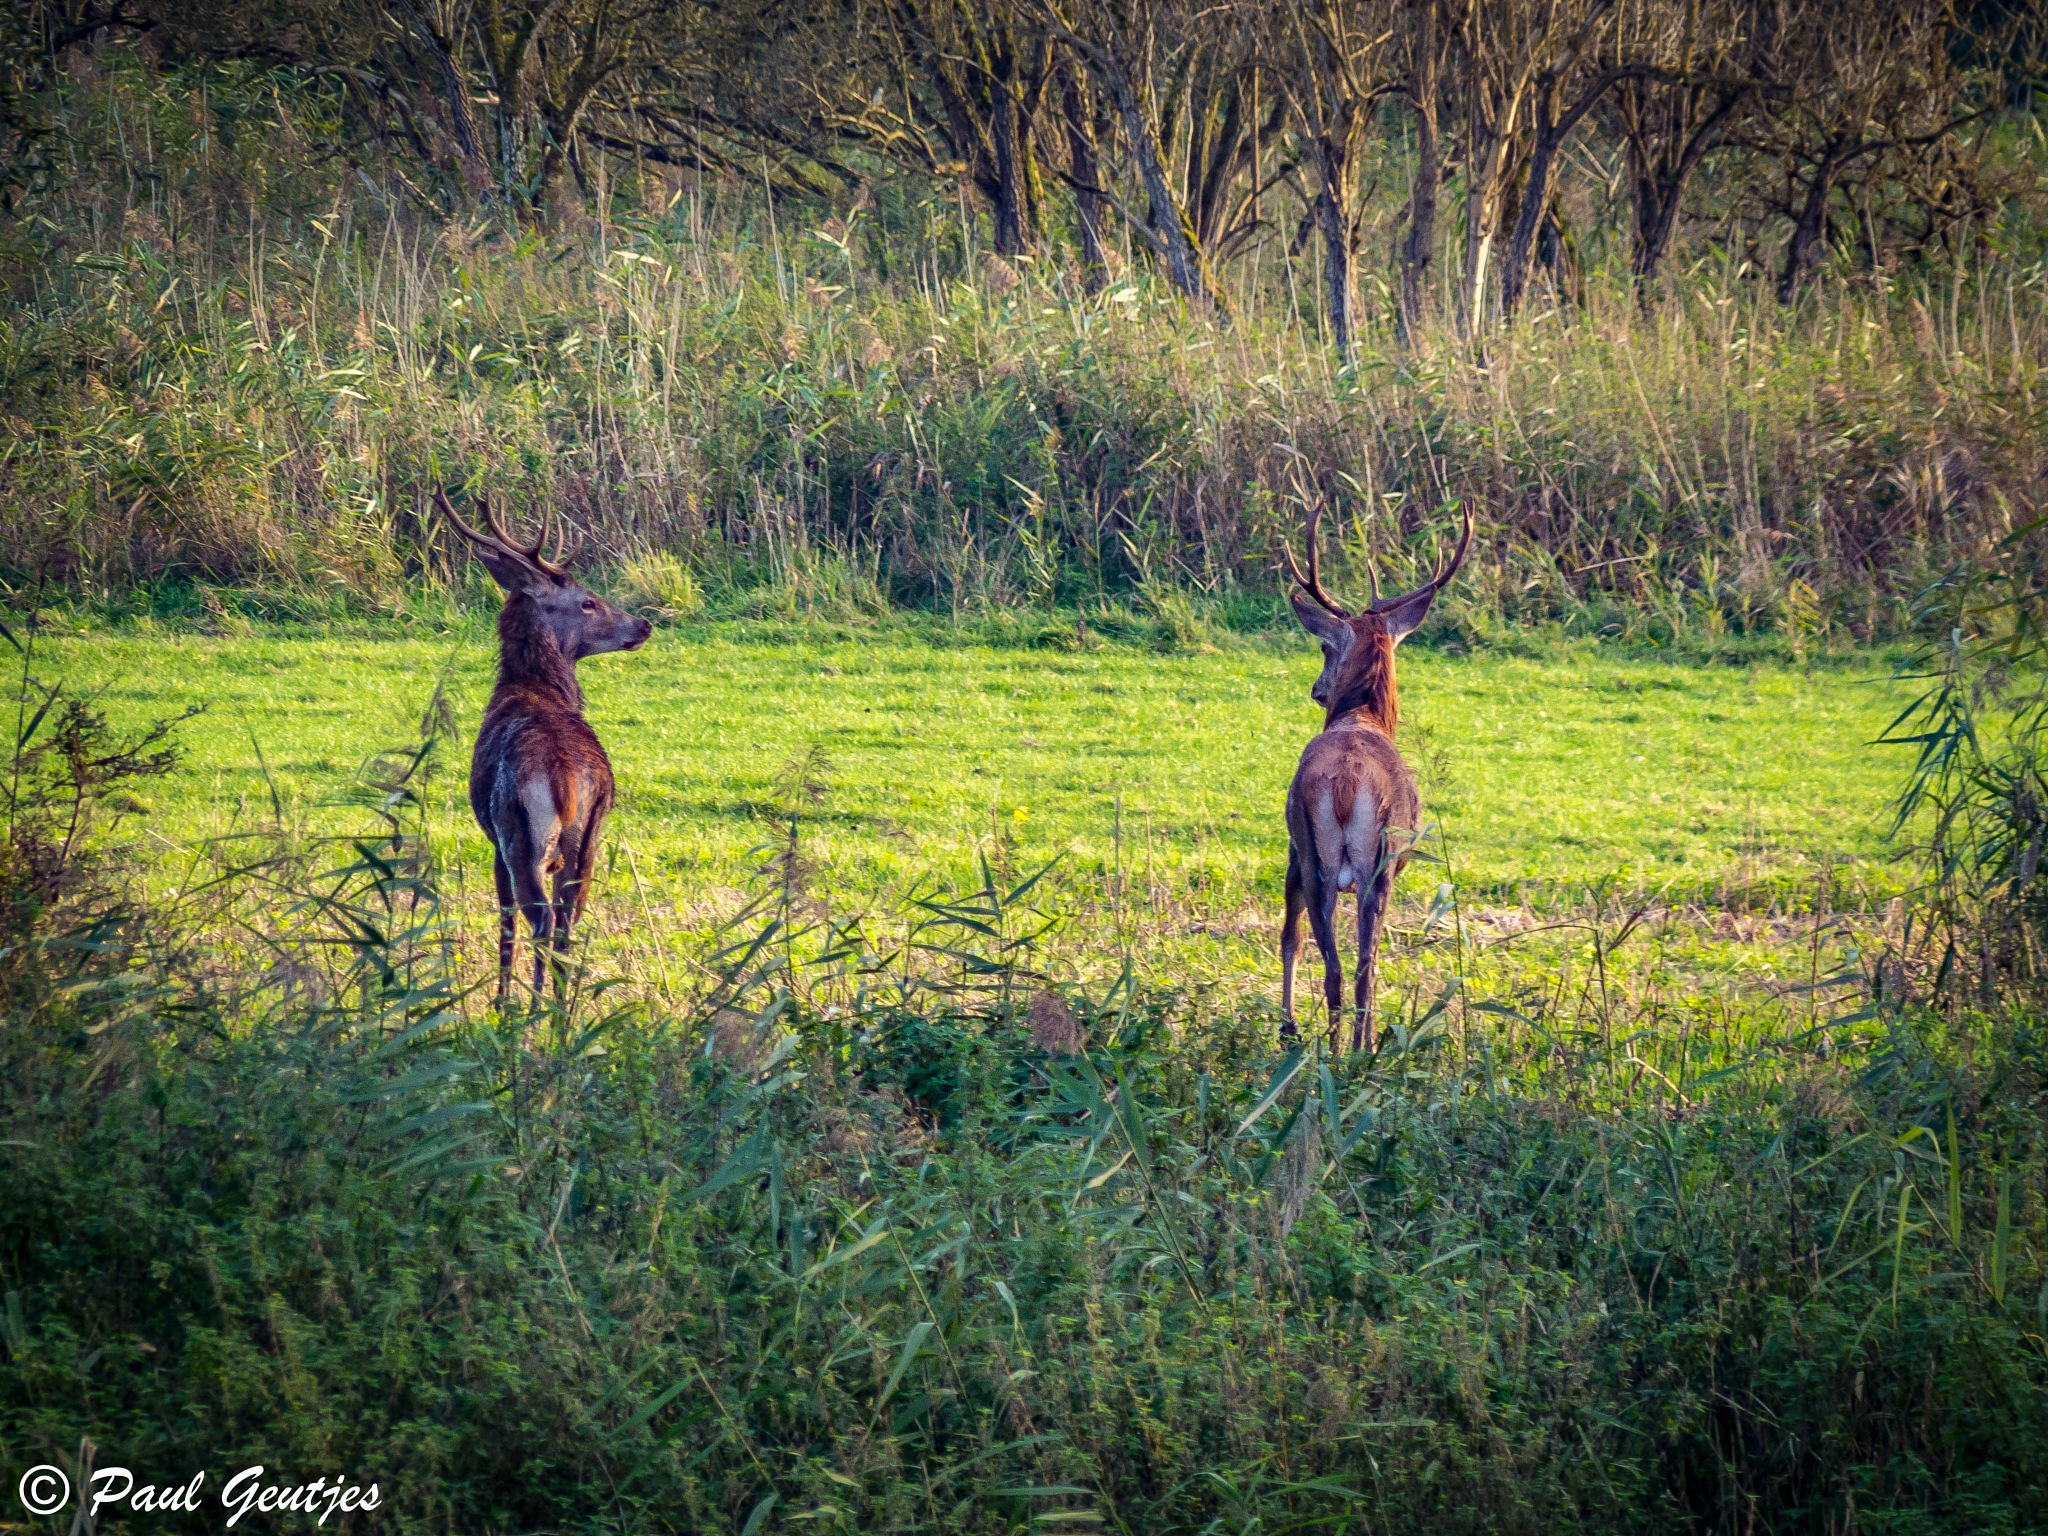 Two deer in the woods by Paul Geutjes